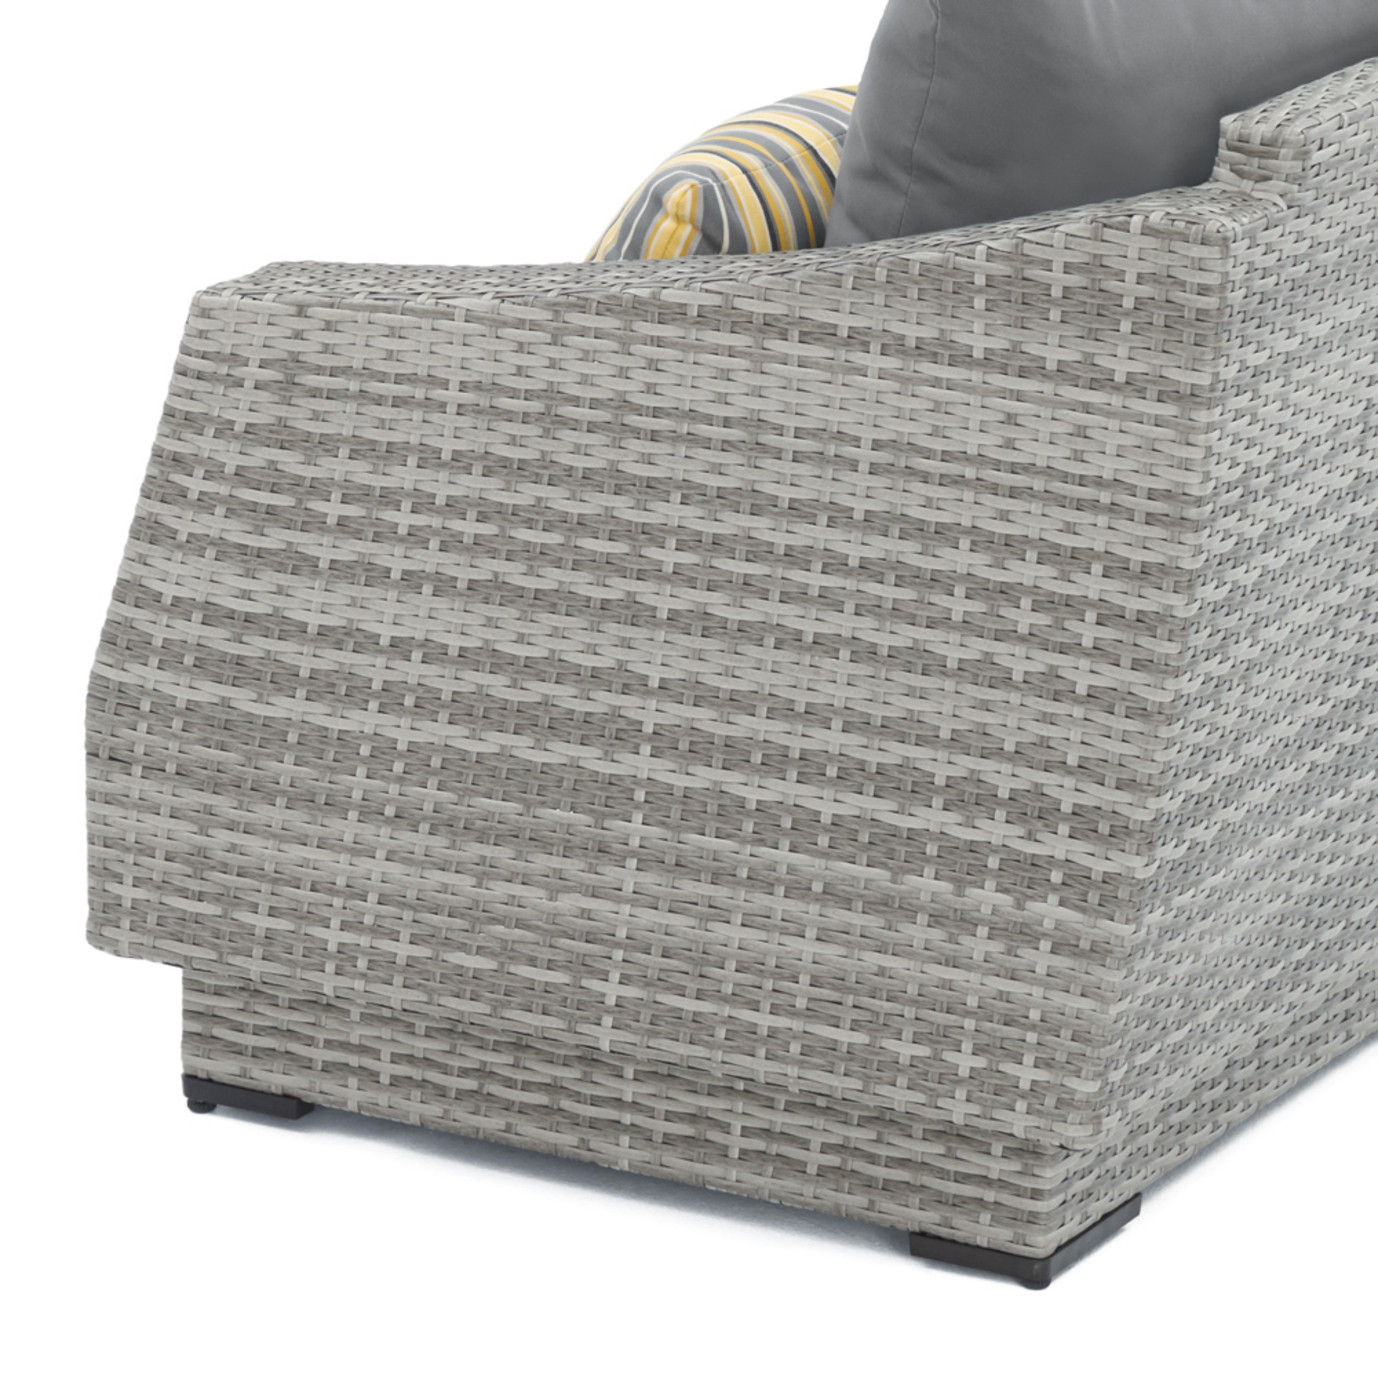 Cannes™ Sofa - Charcoal Grey